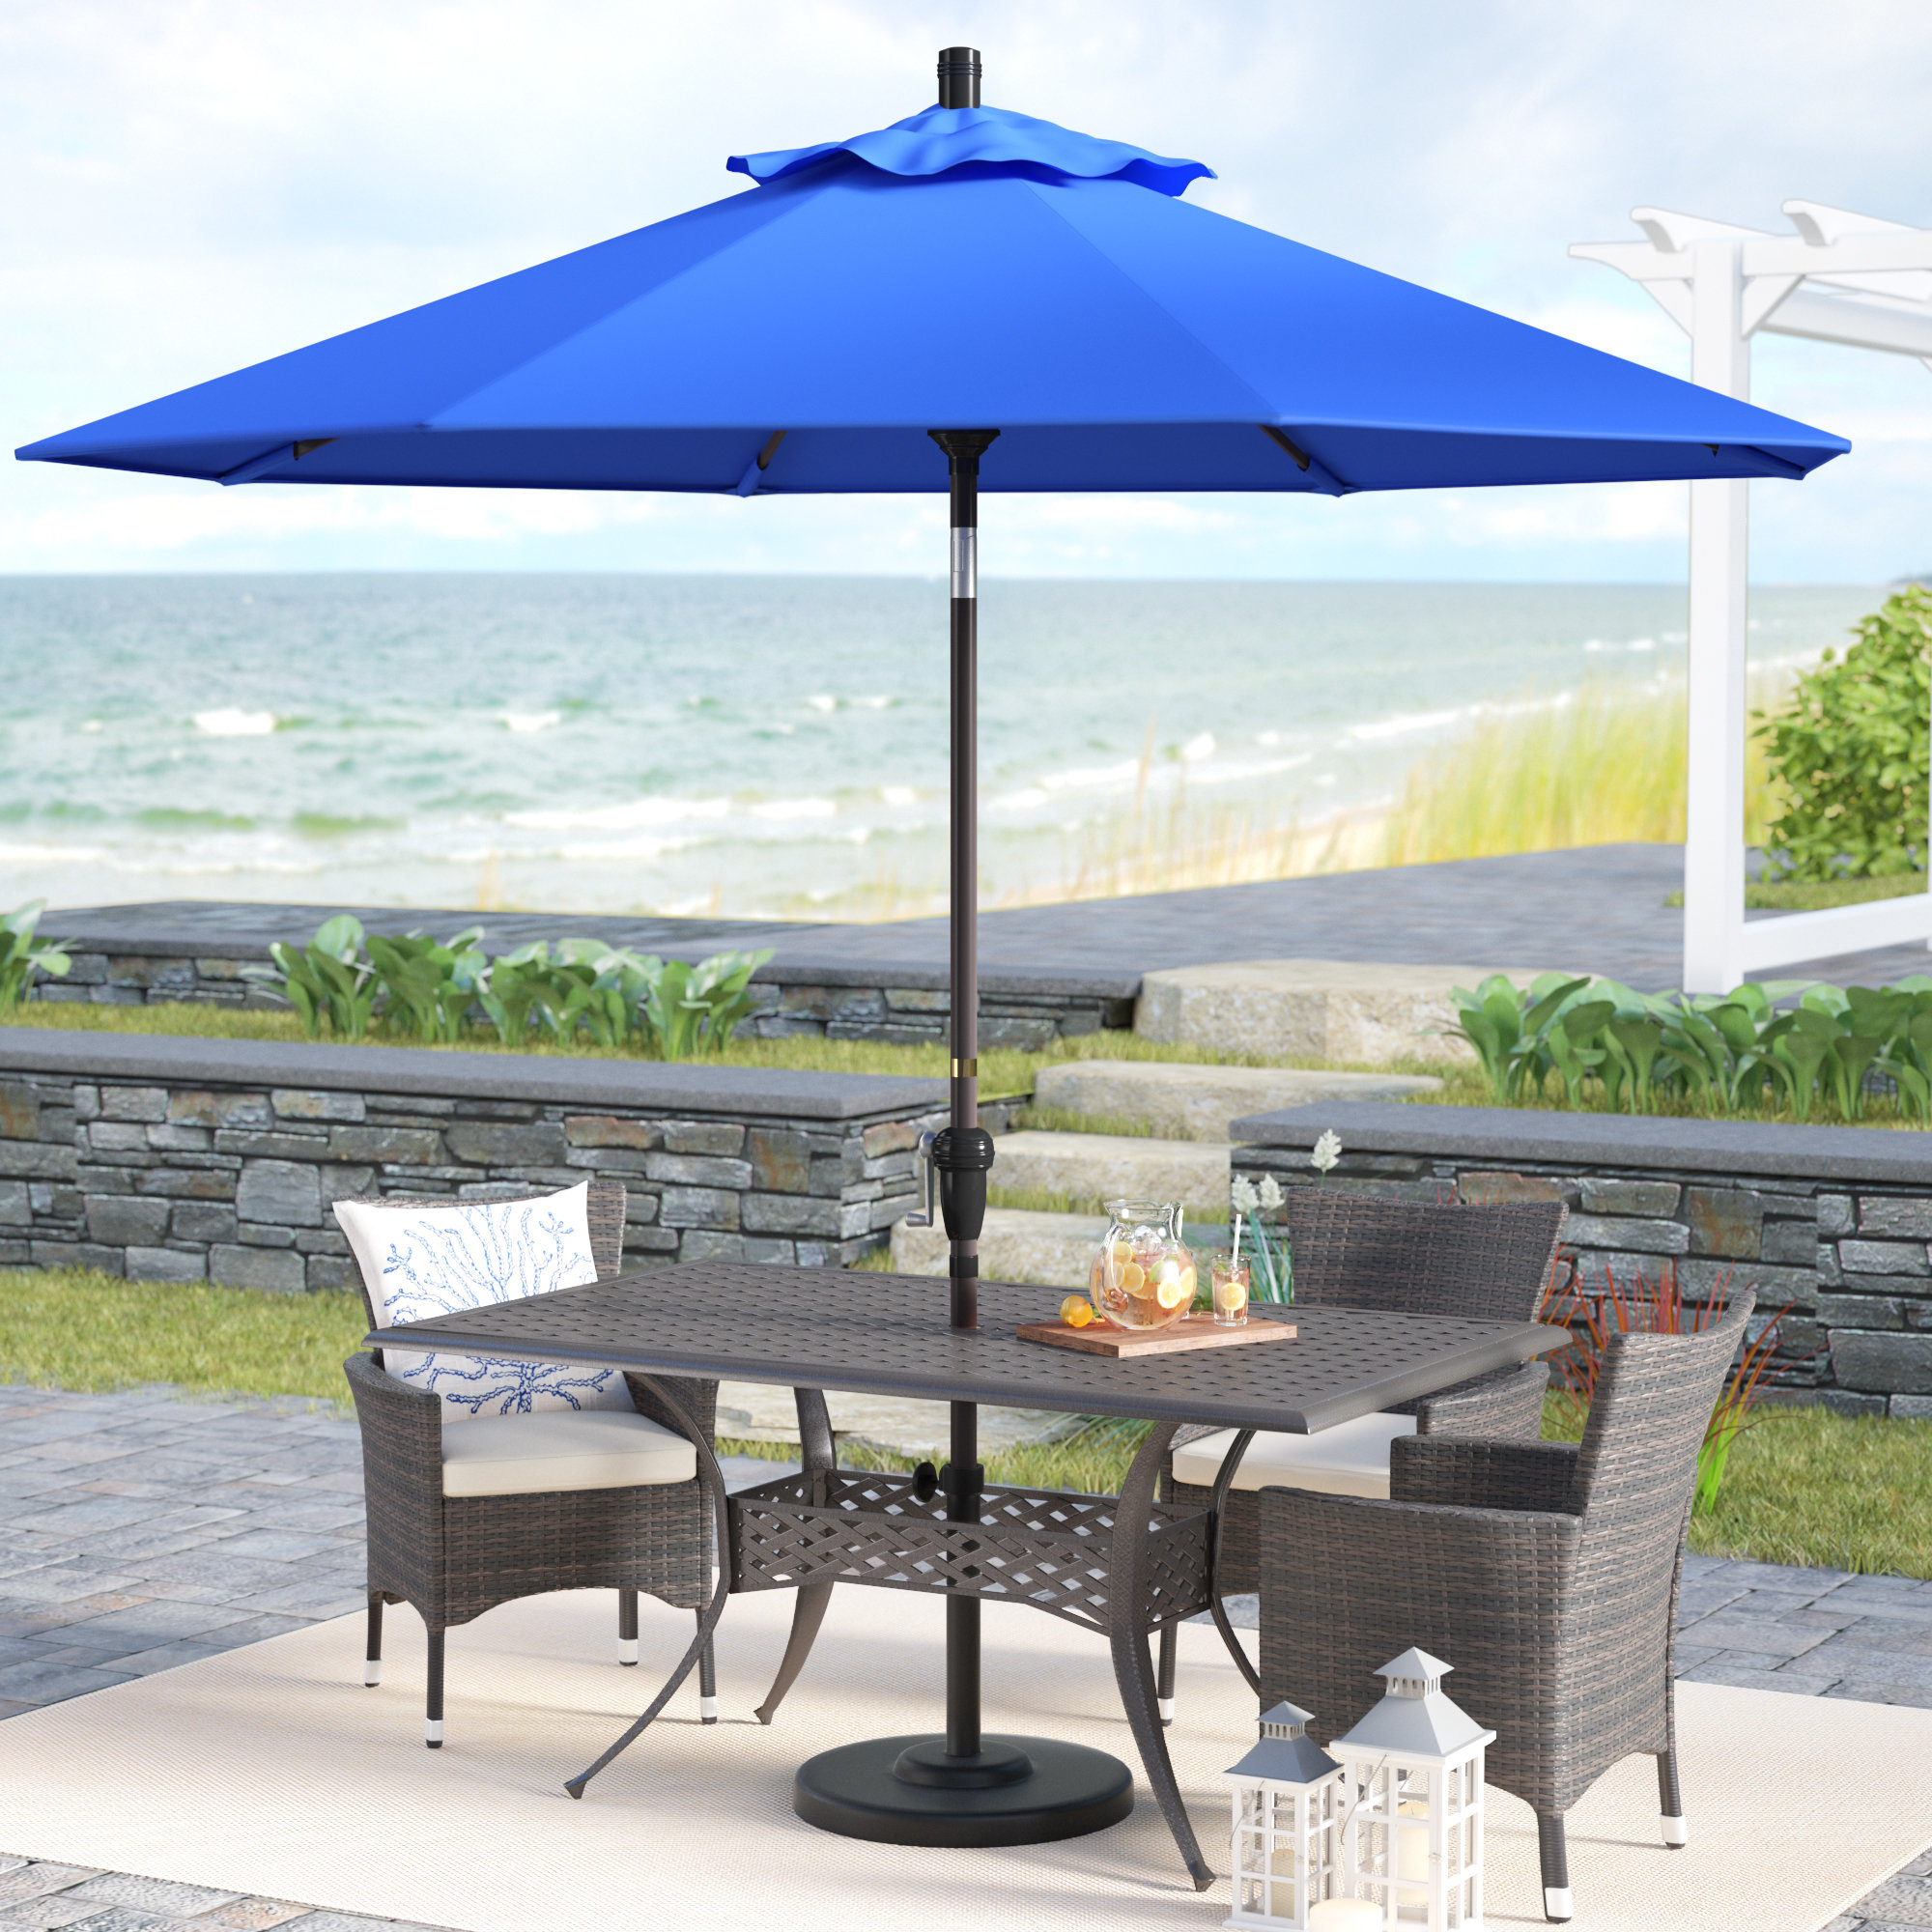 Preferred Mucci Madilyn Market Sunbrella Umbrellas For Mullaney 9' Market Sunbrella Umbrella (View 15 of 20)